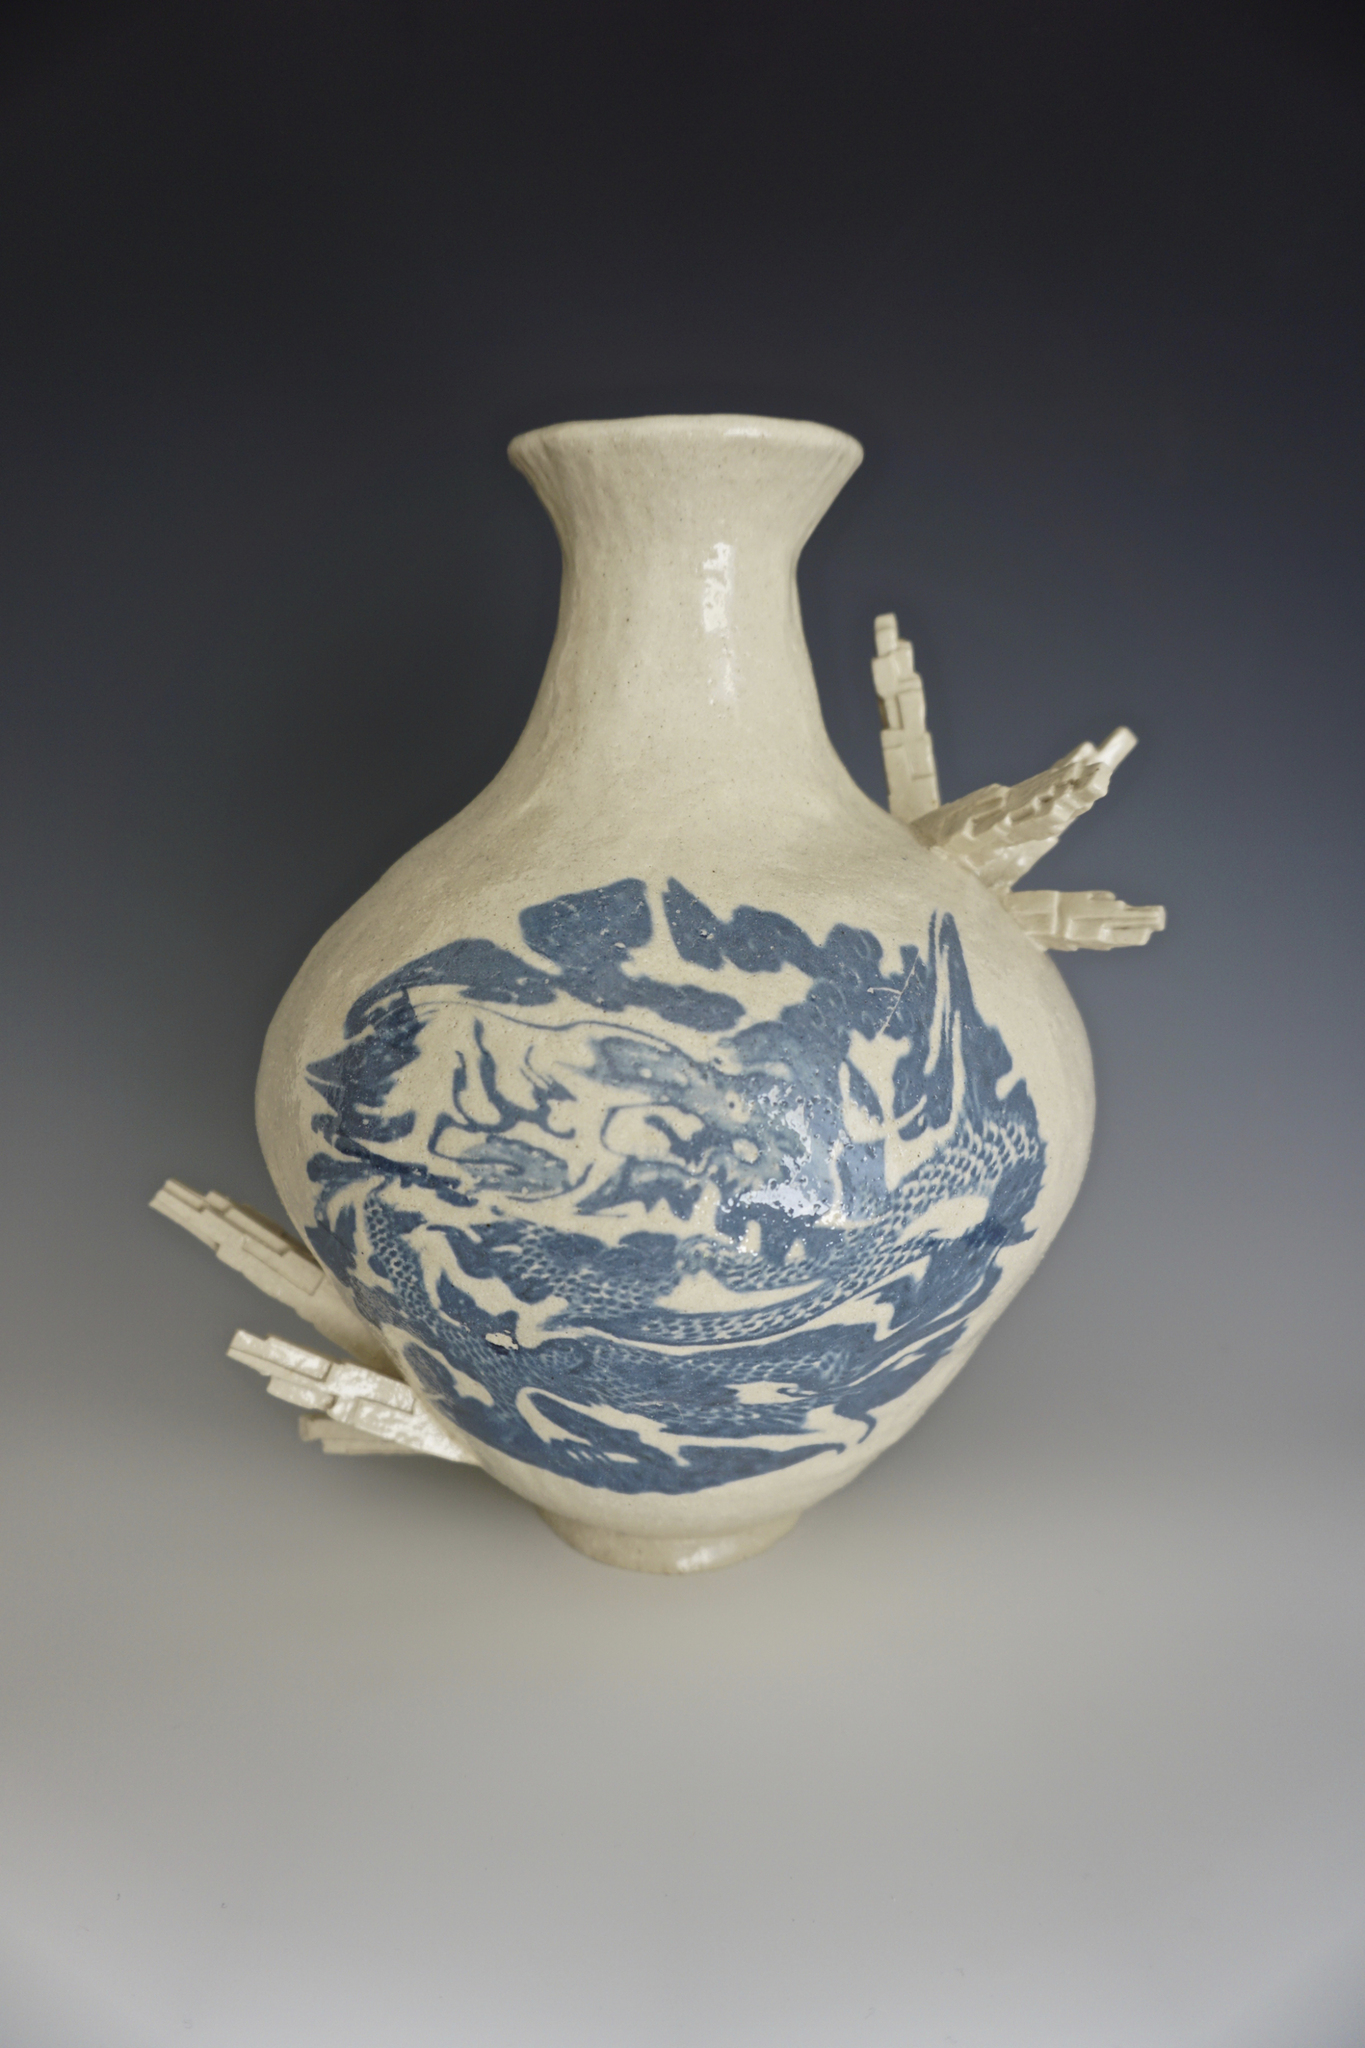 Ceramics Vase with a blue pattern in the front